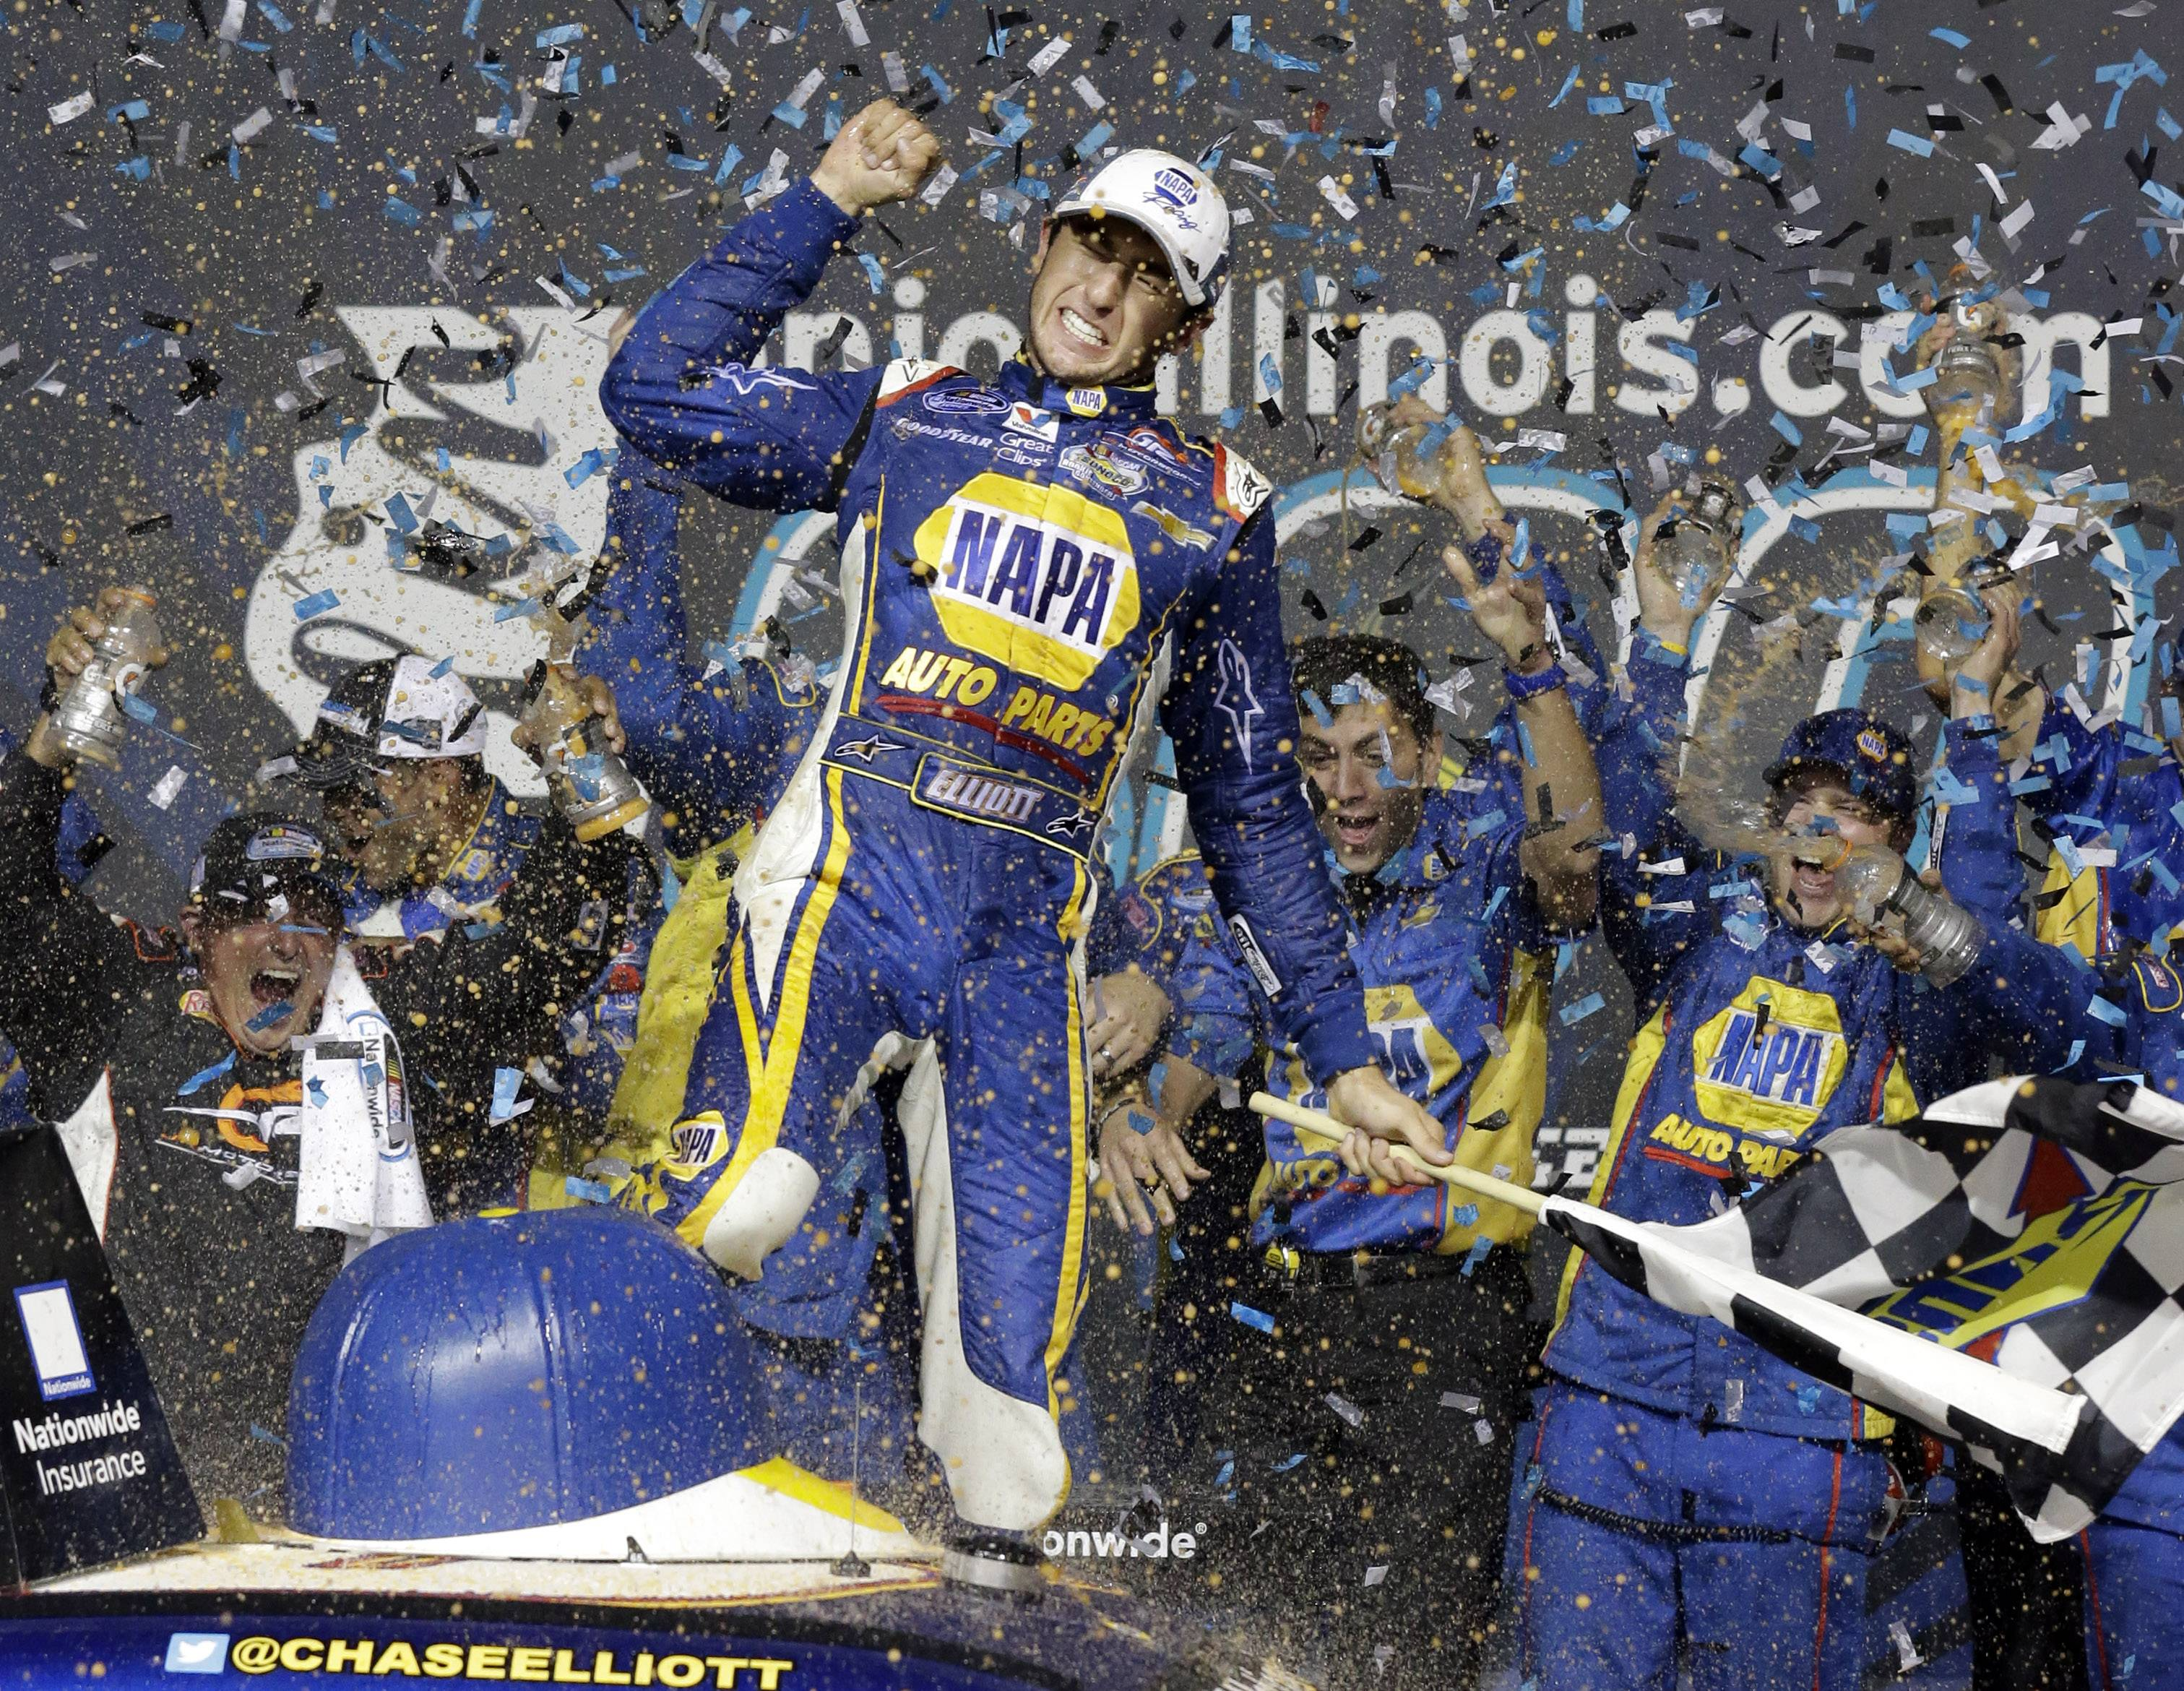 Chase Elliott (9) celebrates with teammates in Victory Lane after winning the NASCAR Nationwide Series auto race Saturday at Chicagoland Speedway in Joliet.